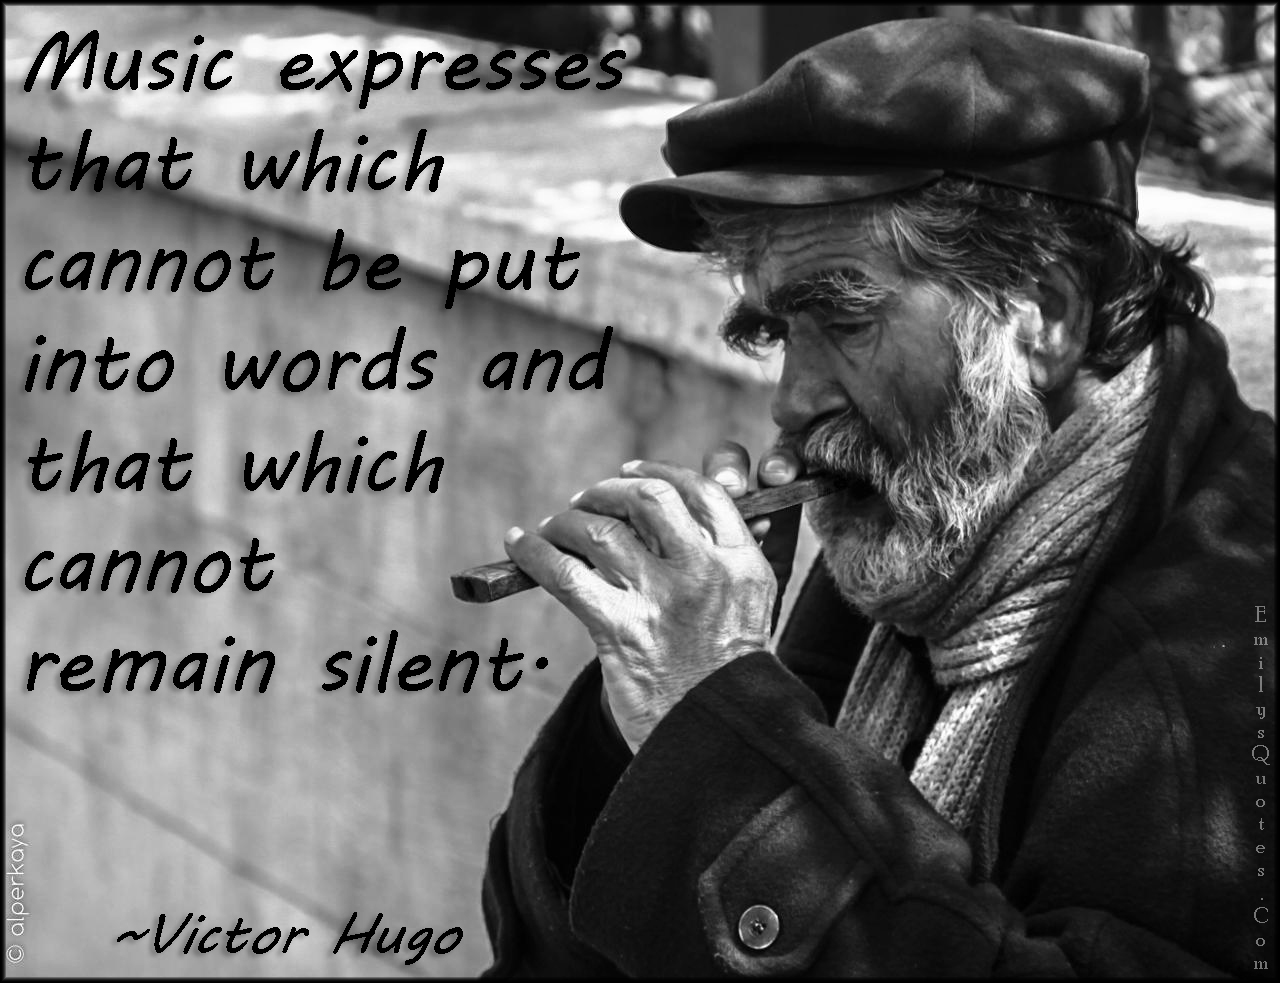 Words Of Wisdom Quotes Music Expresses That Which Cannot Be Put Into Words And That Which